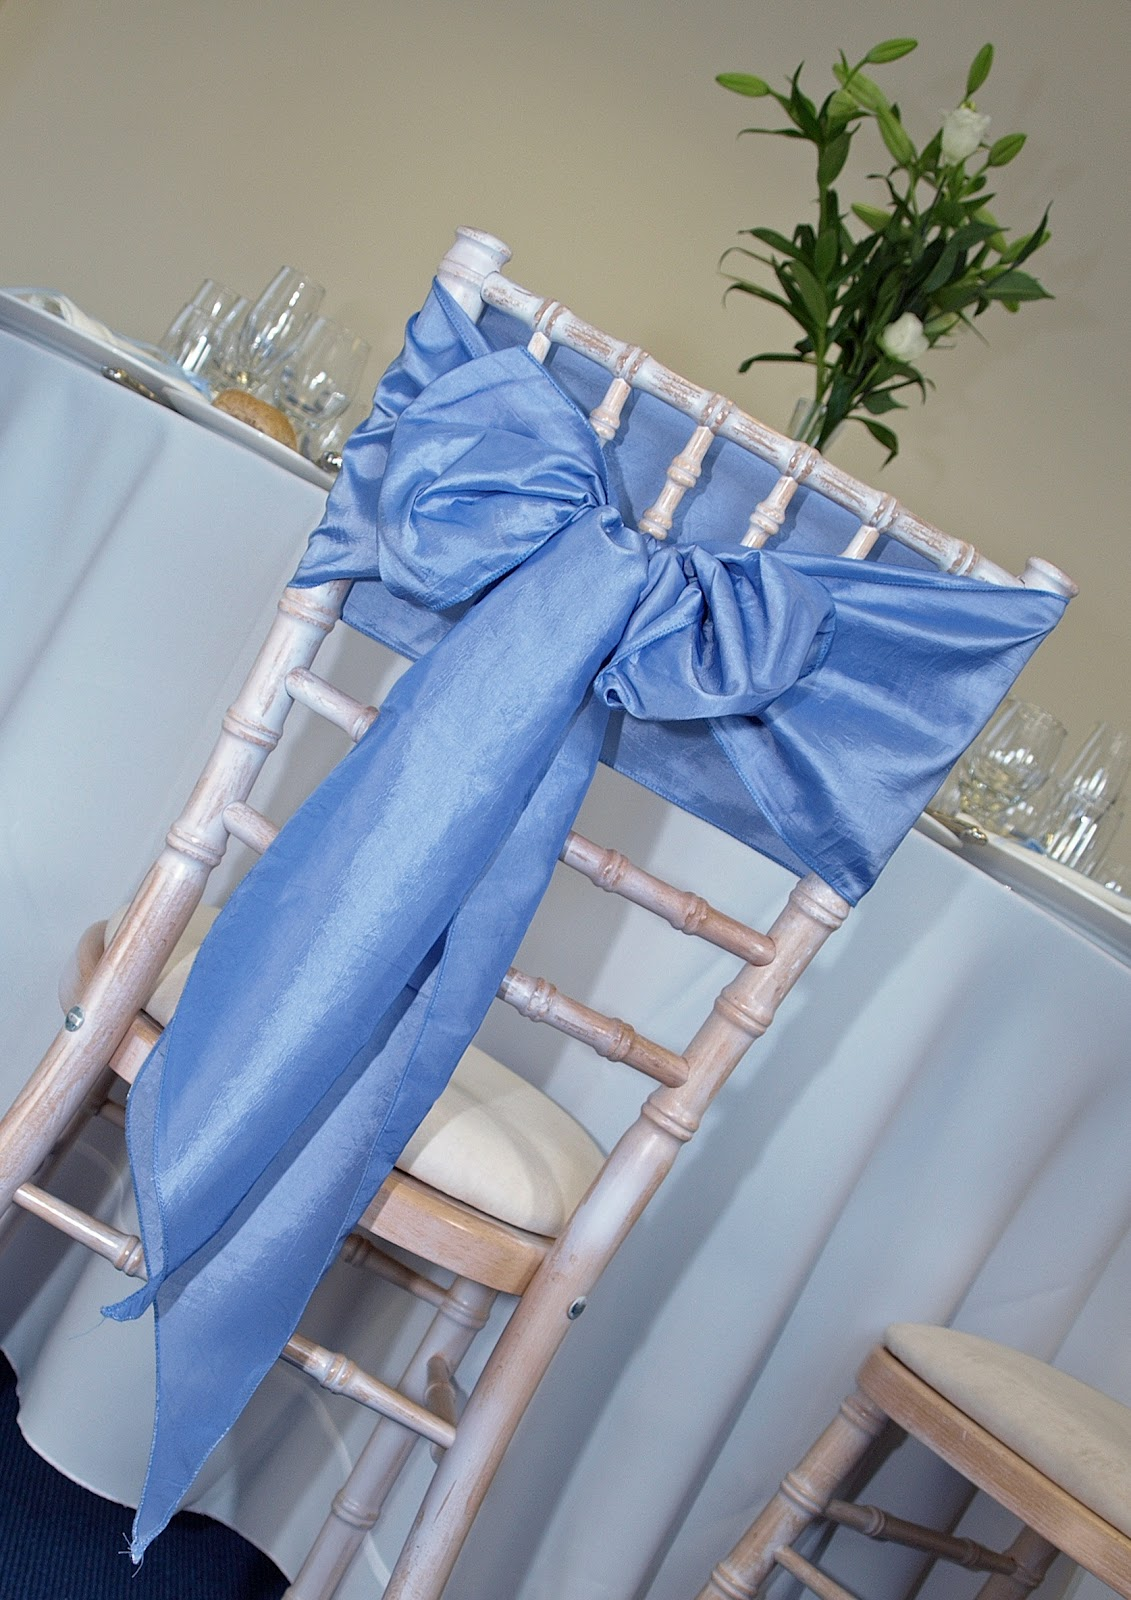 Wedding Chair Cover Hire Chesterfield Monoblock For Sale Philippines Table And Tel 0870 600 4007 Weddings Lime Wash